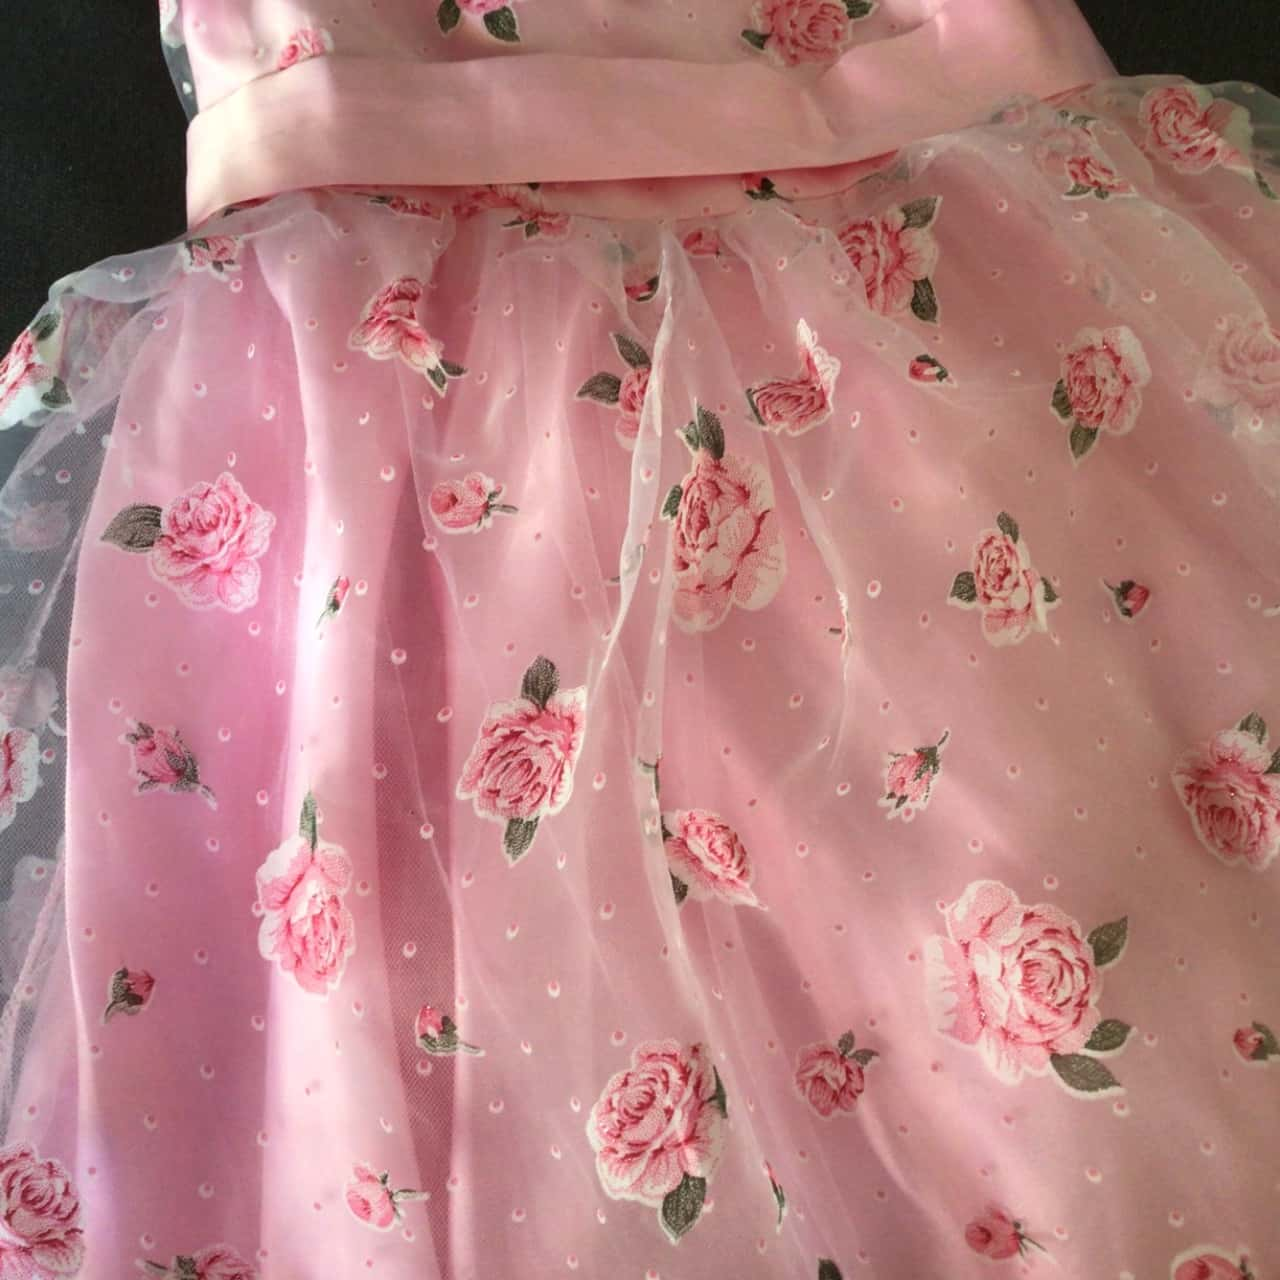 NWOT PRETTY PINK FLORAL PARTY DRESS WITH ROSE BROOCH. TUILLE LAYERS Size 6-8